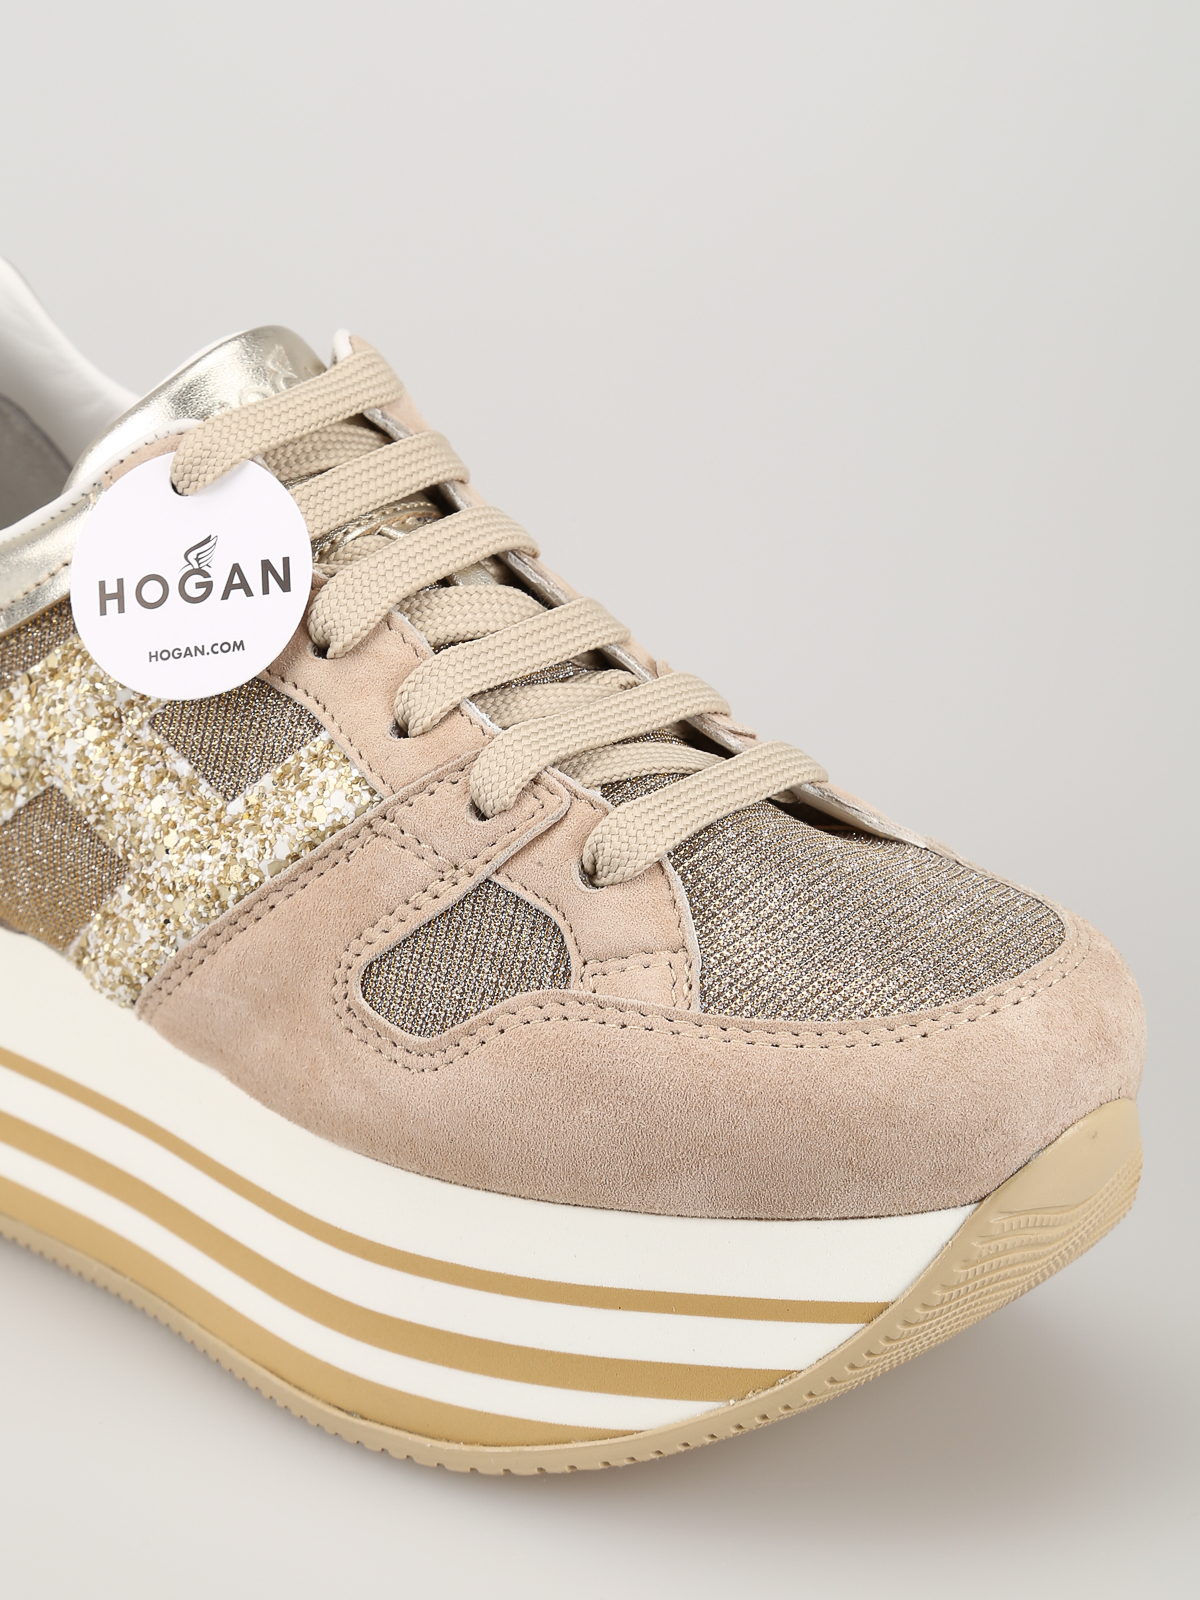 Trainers Hogan - Beige suede and fabric maxi sole sneakers ...